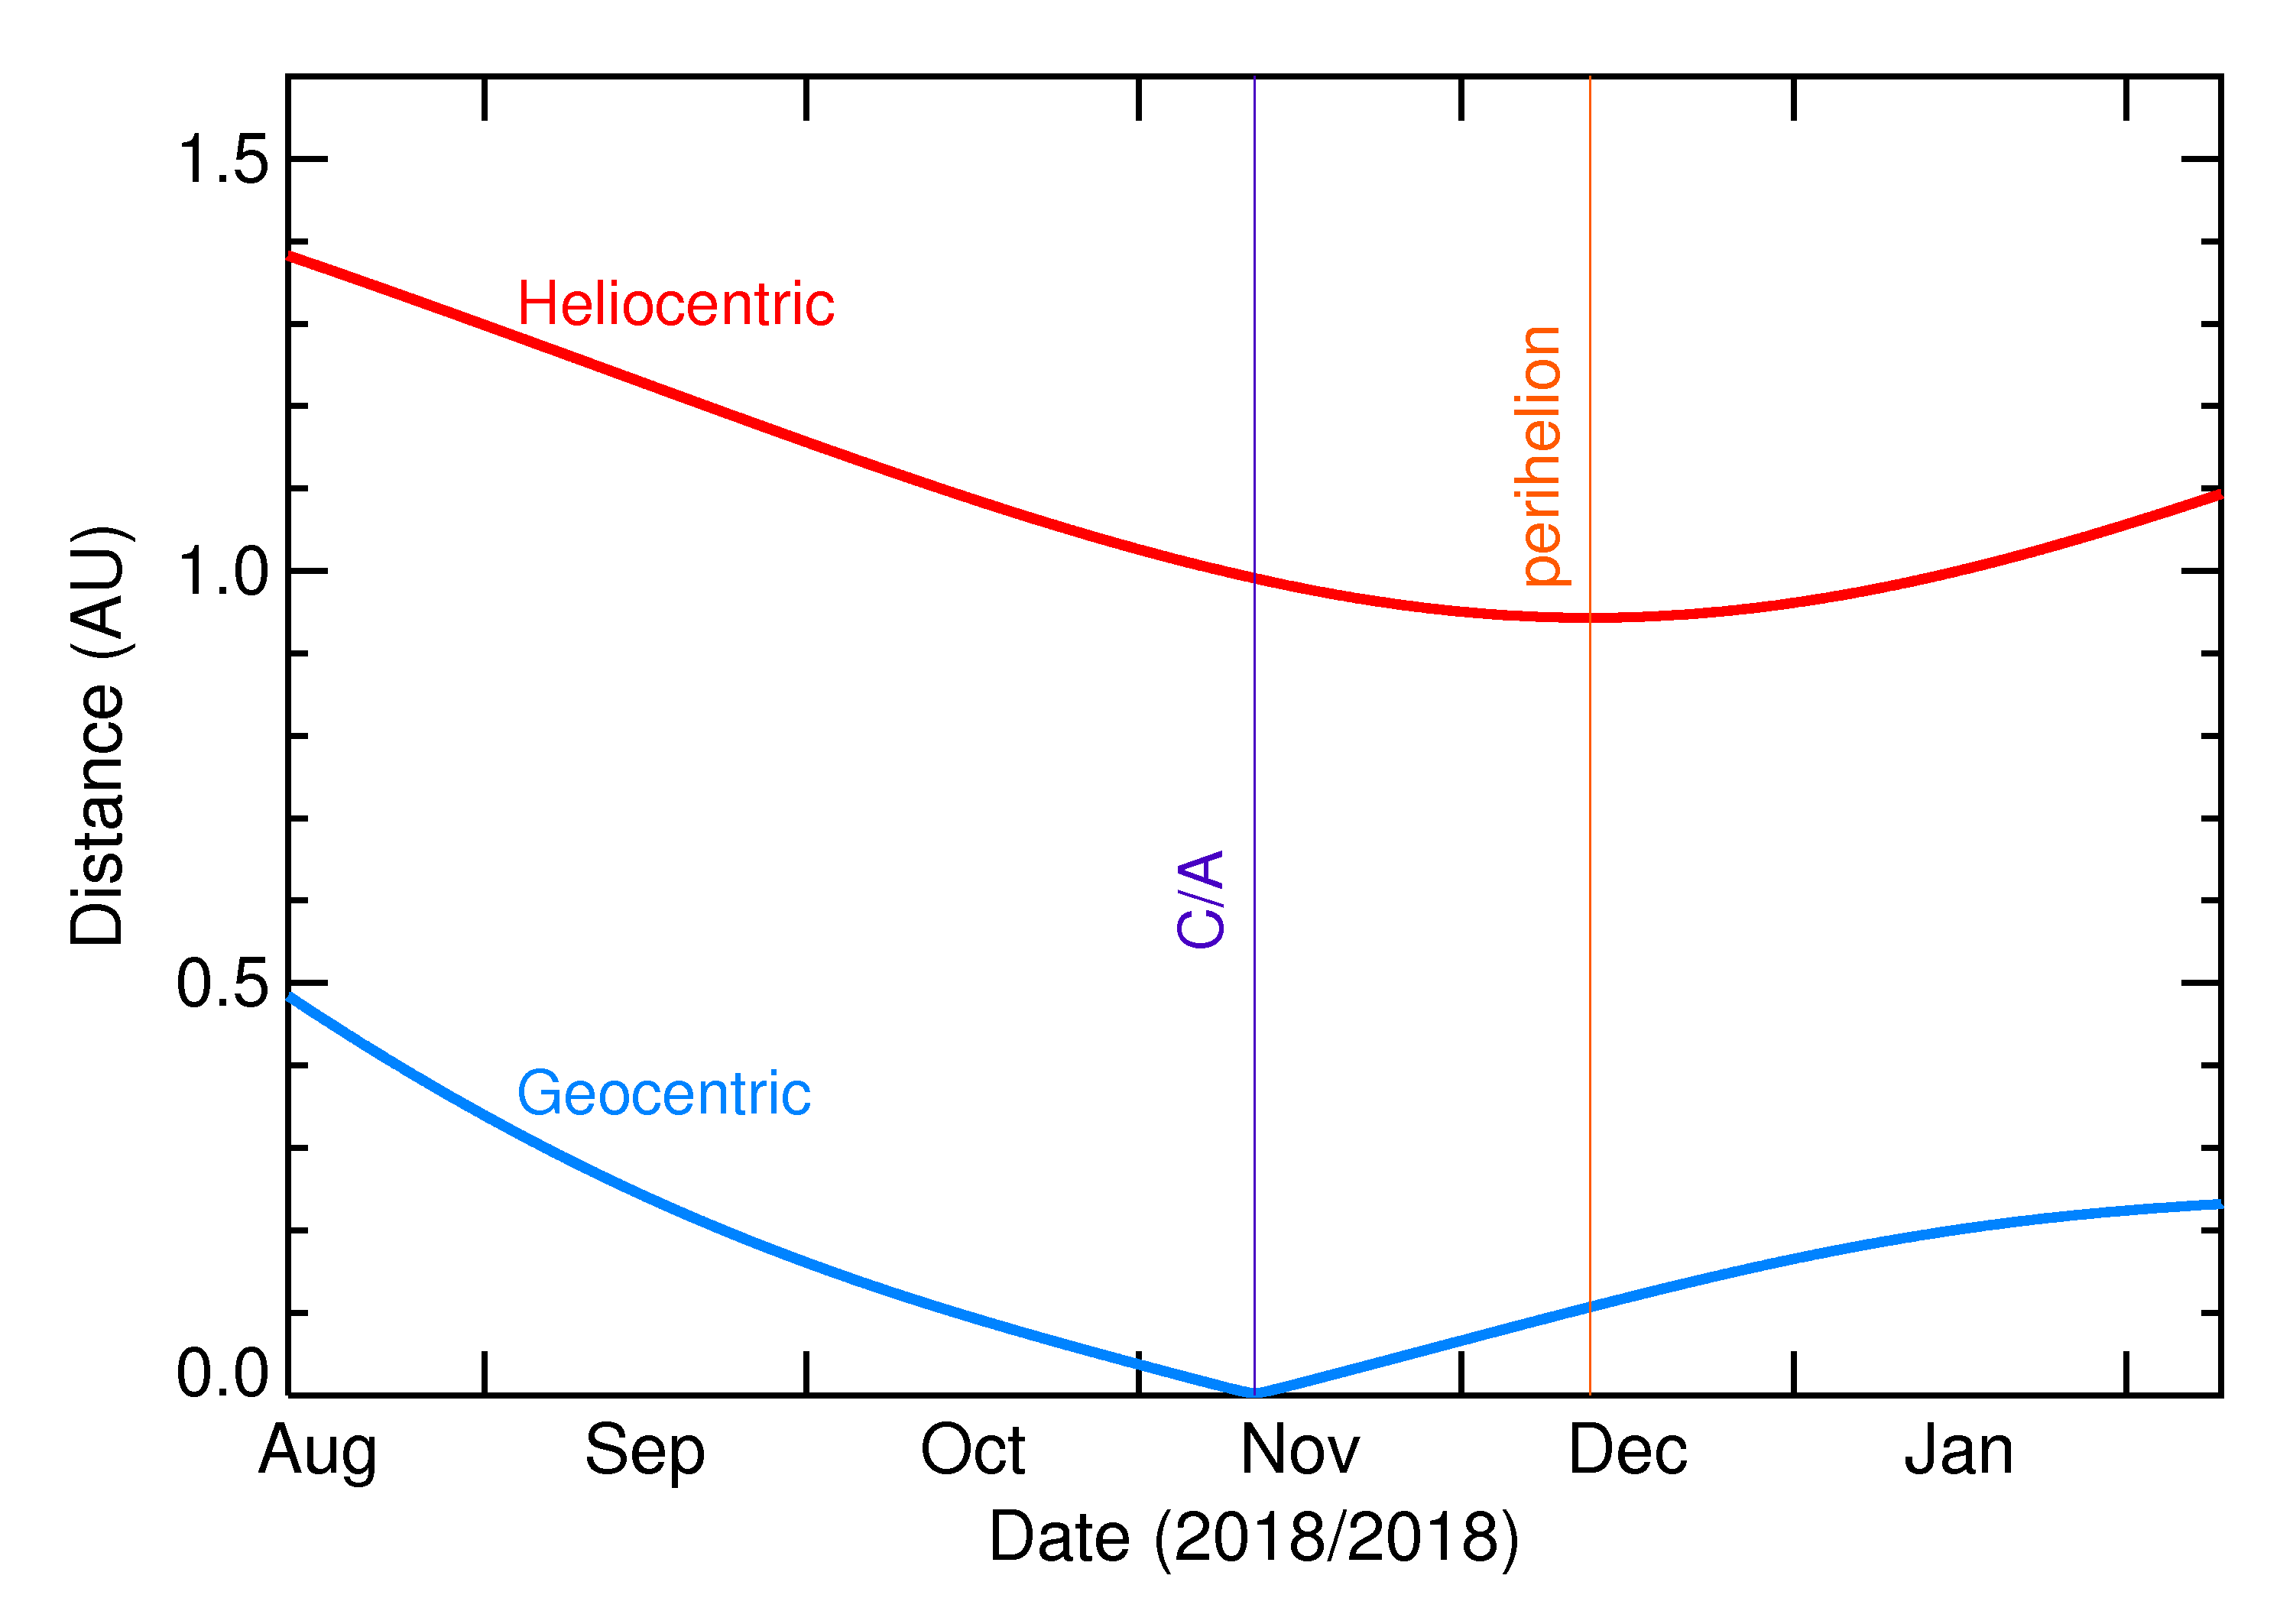 Heliocentric and Geocentric Distances of 2018 VX1 in the months around closest approach